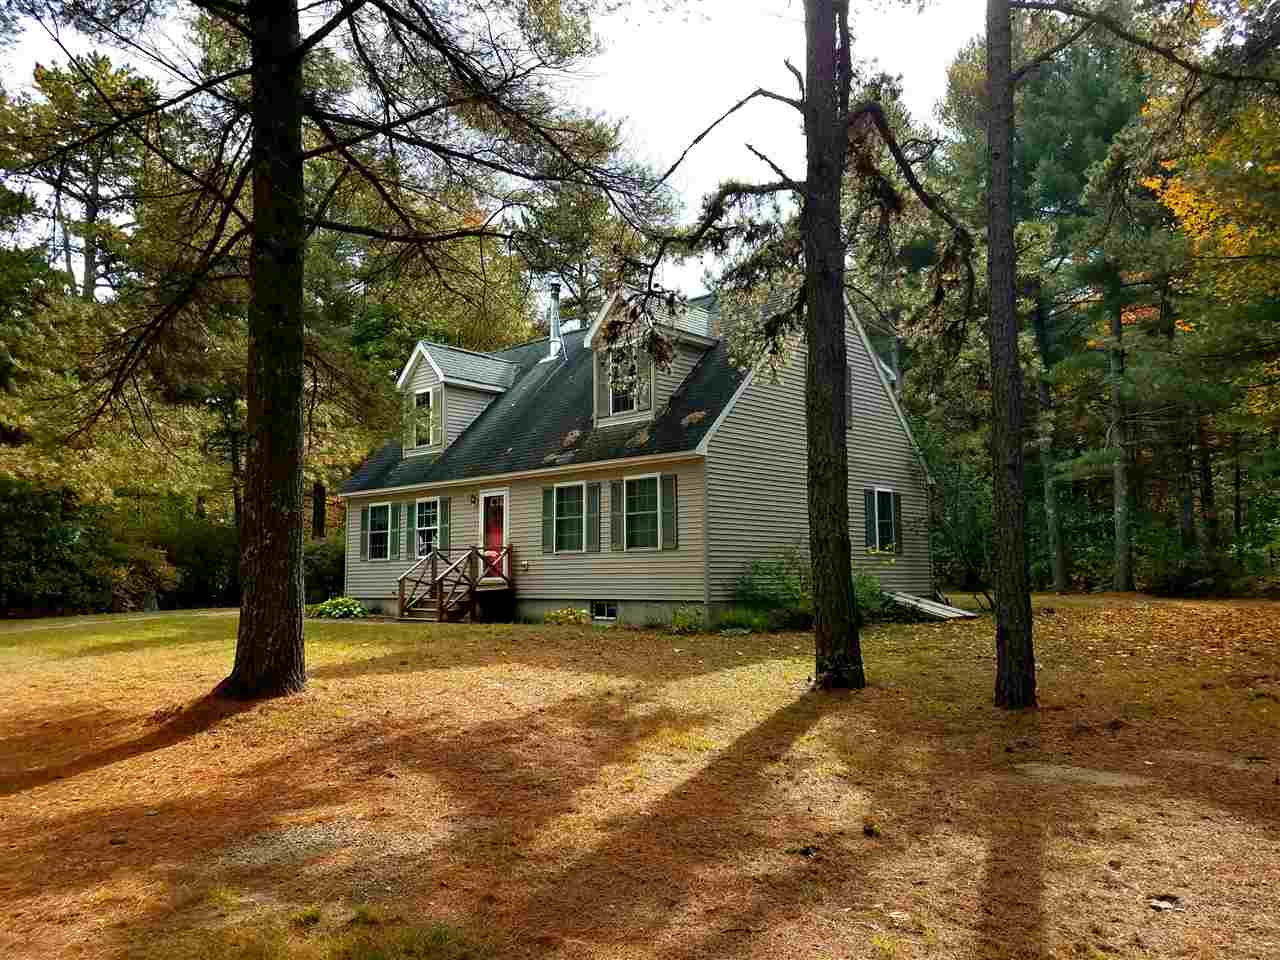 WAKEFIELD NH Homes for sale